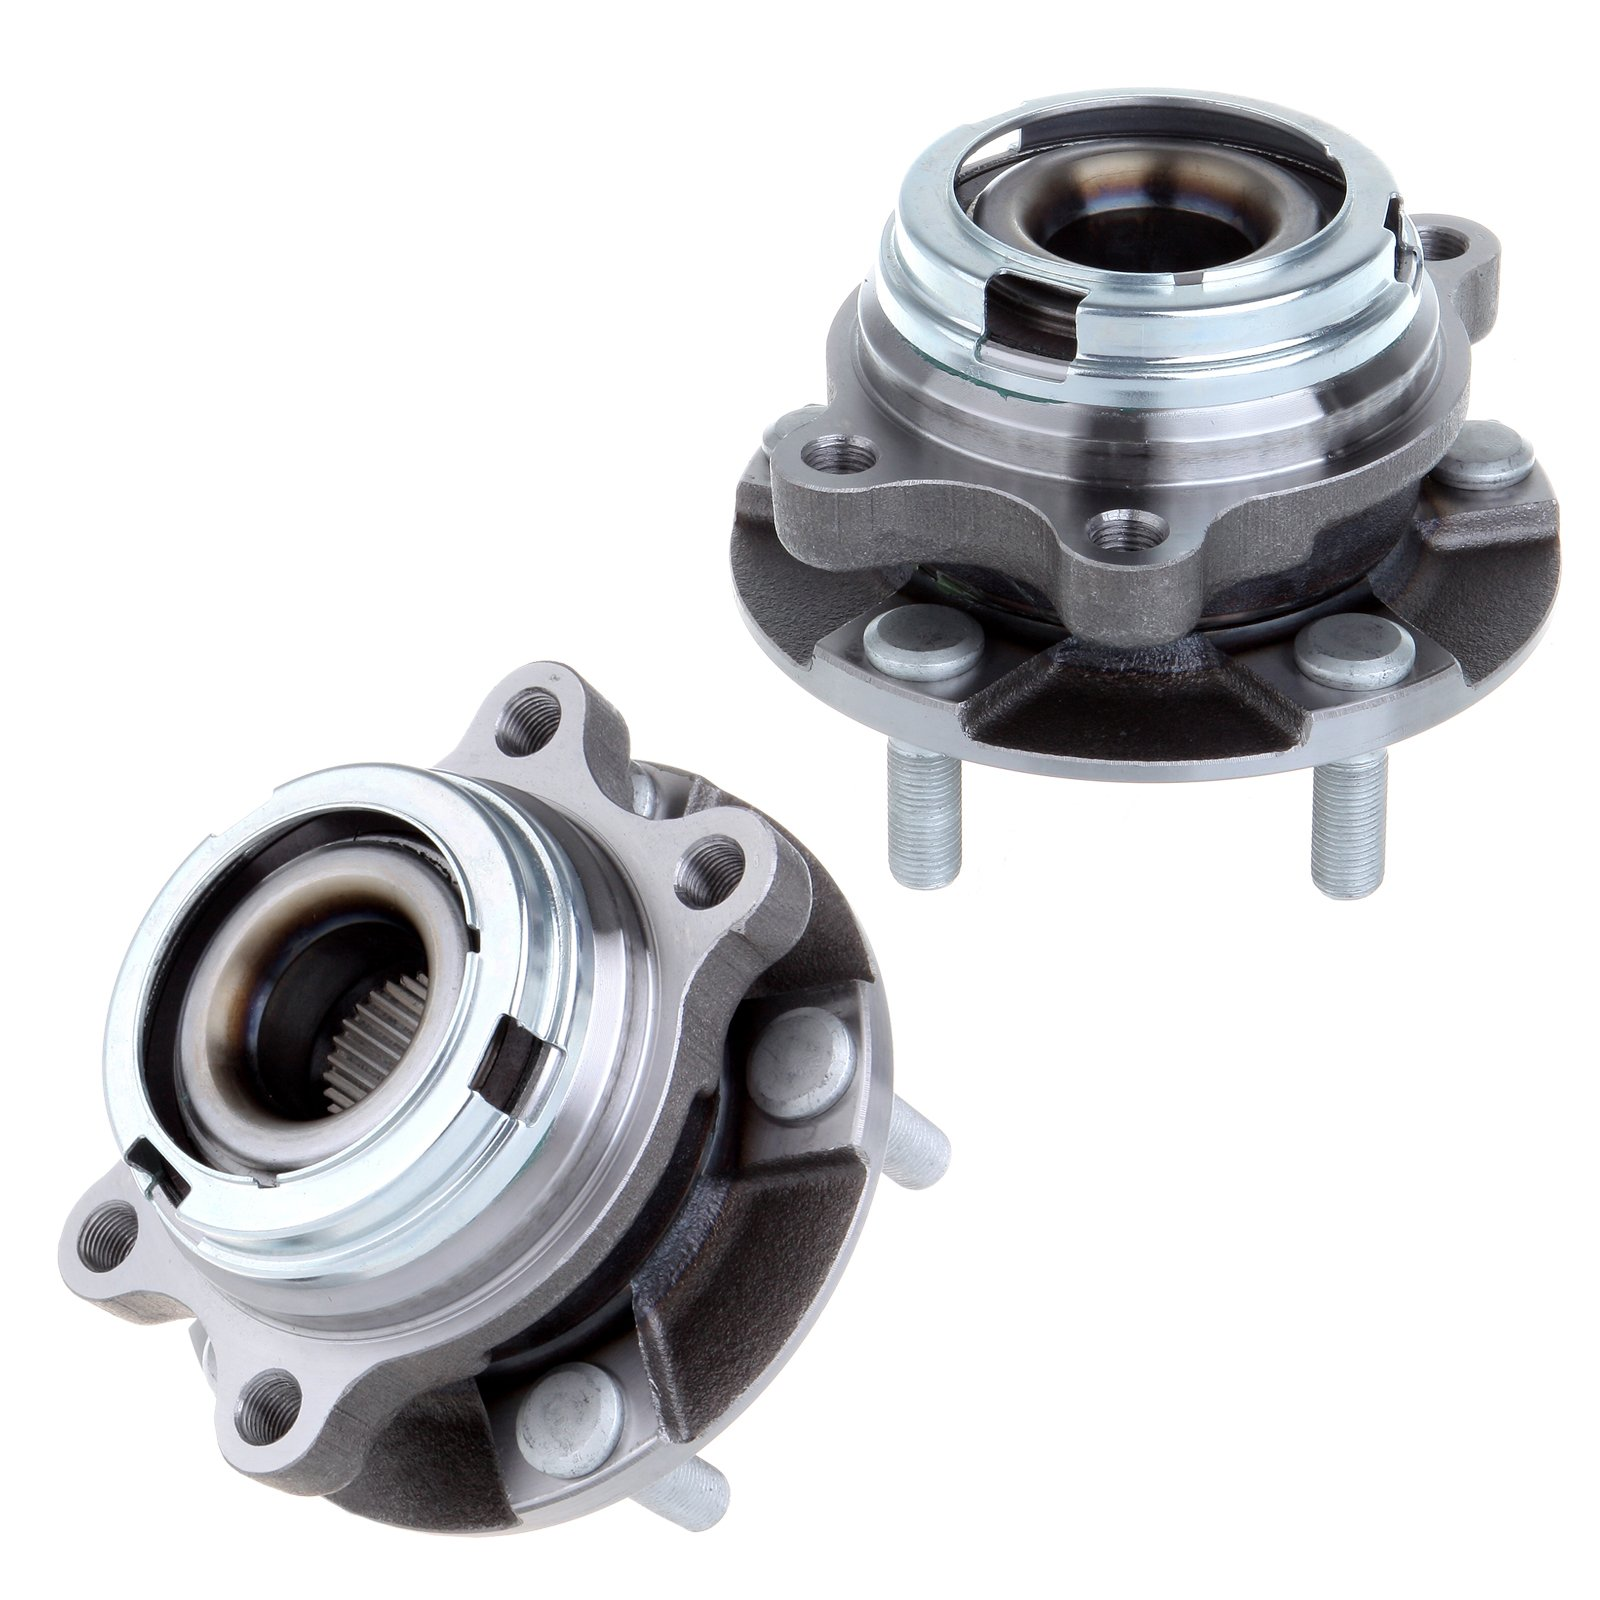 ECCPP Pair Of 2 New Premium FRONT Wheel Hub Bearing for a Nissan Murano Quest W/O ABS 513310 X 2